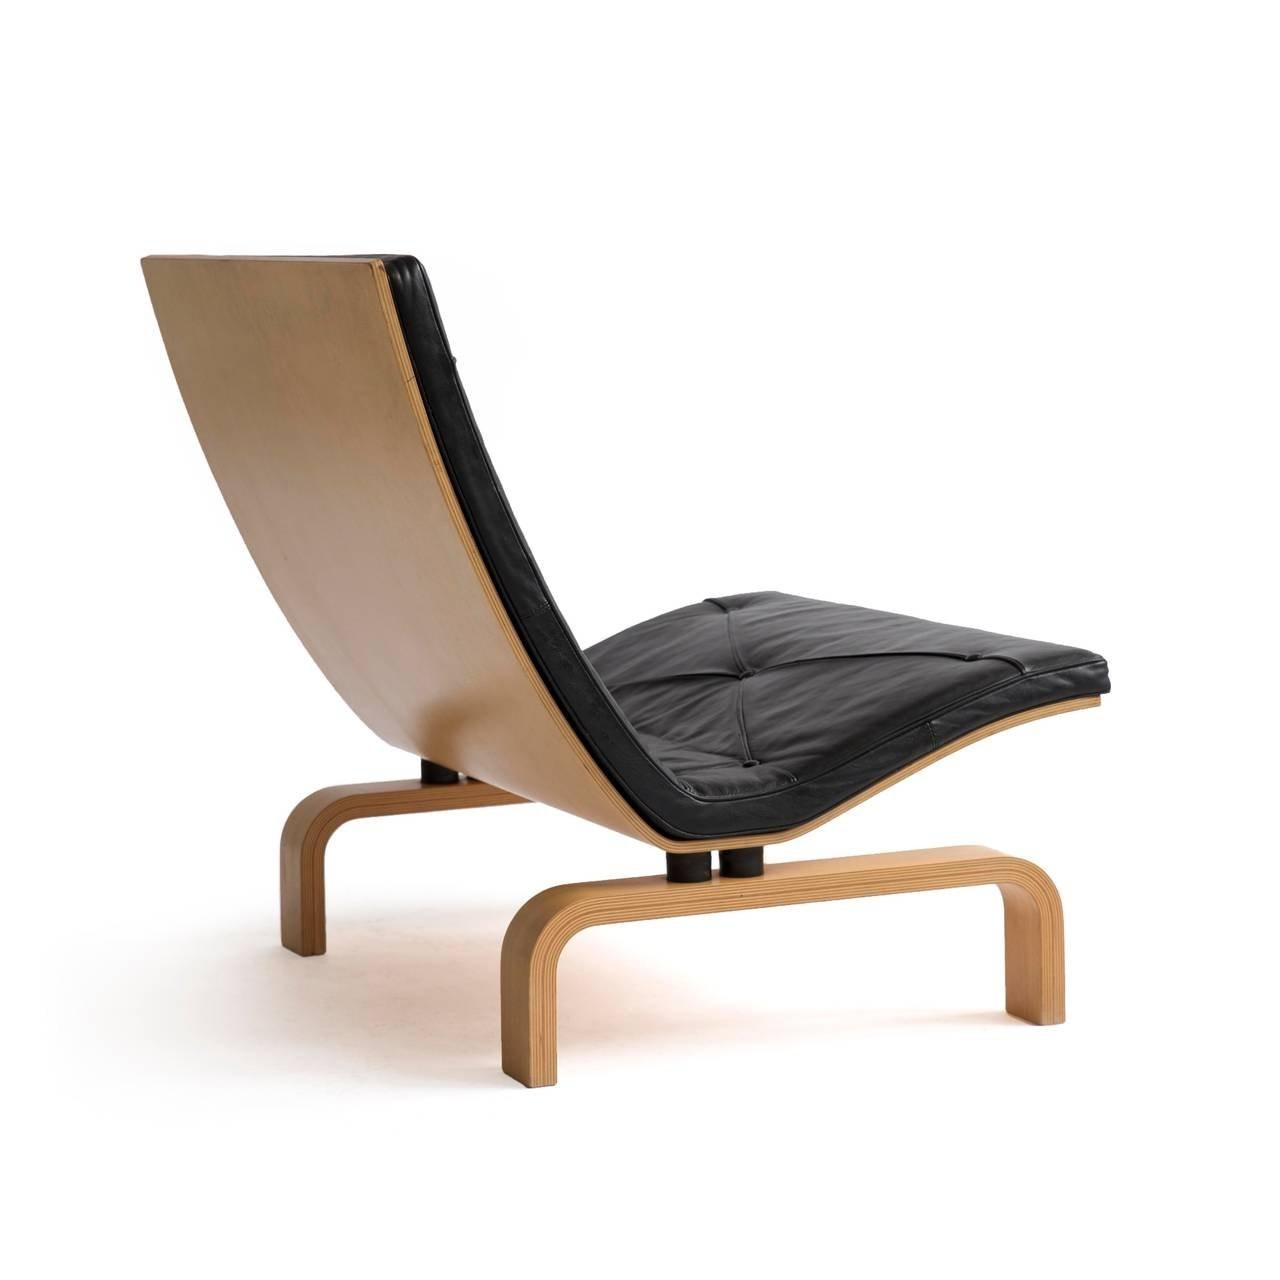 Poul Kjaerholm Pk27 Easy Chair Kold Christensen